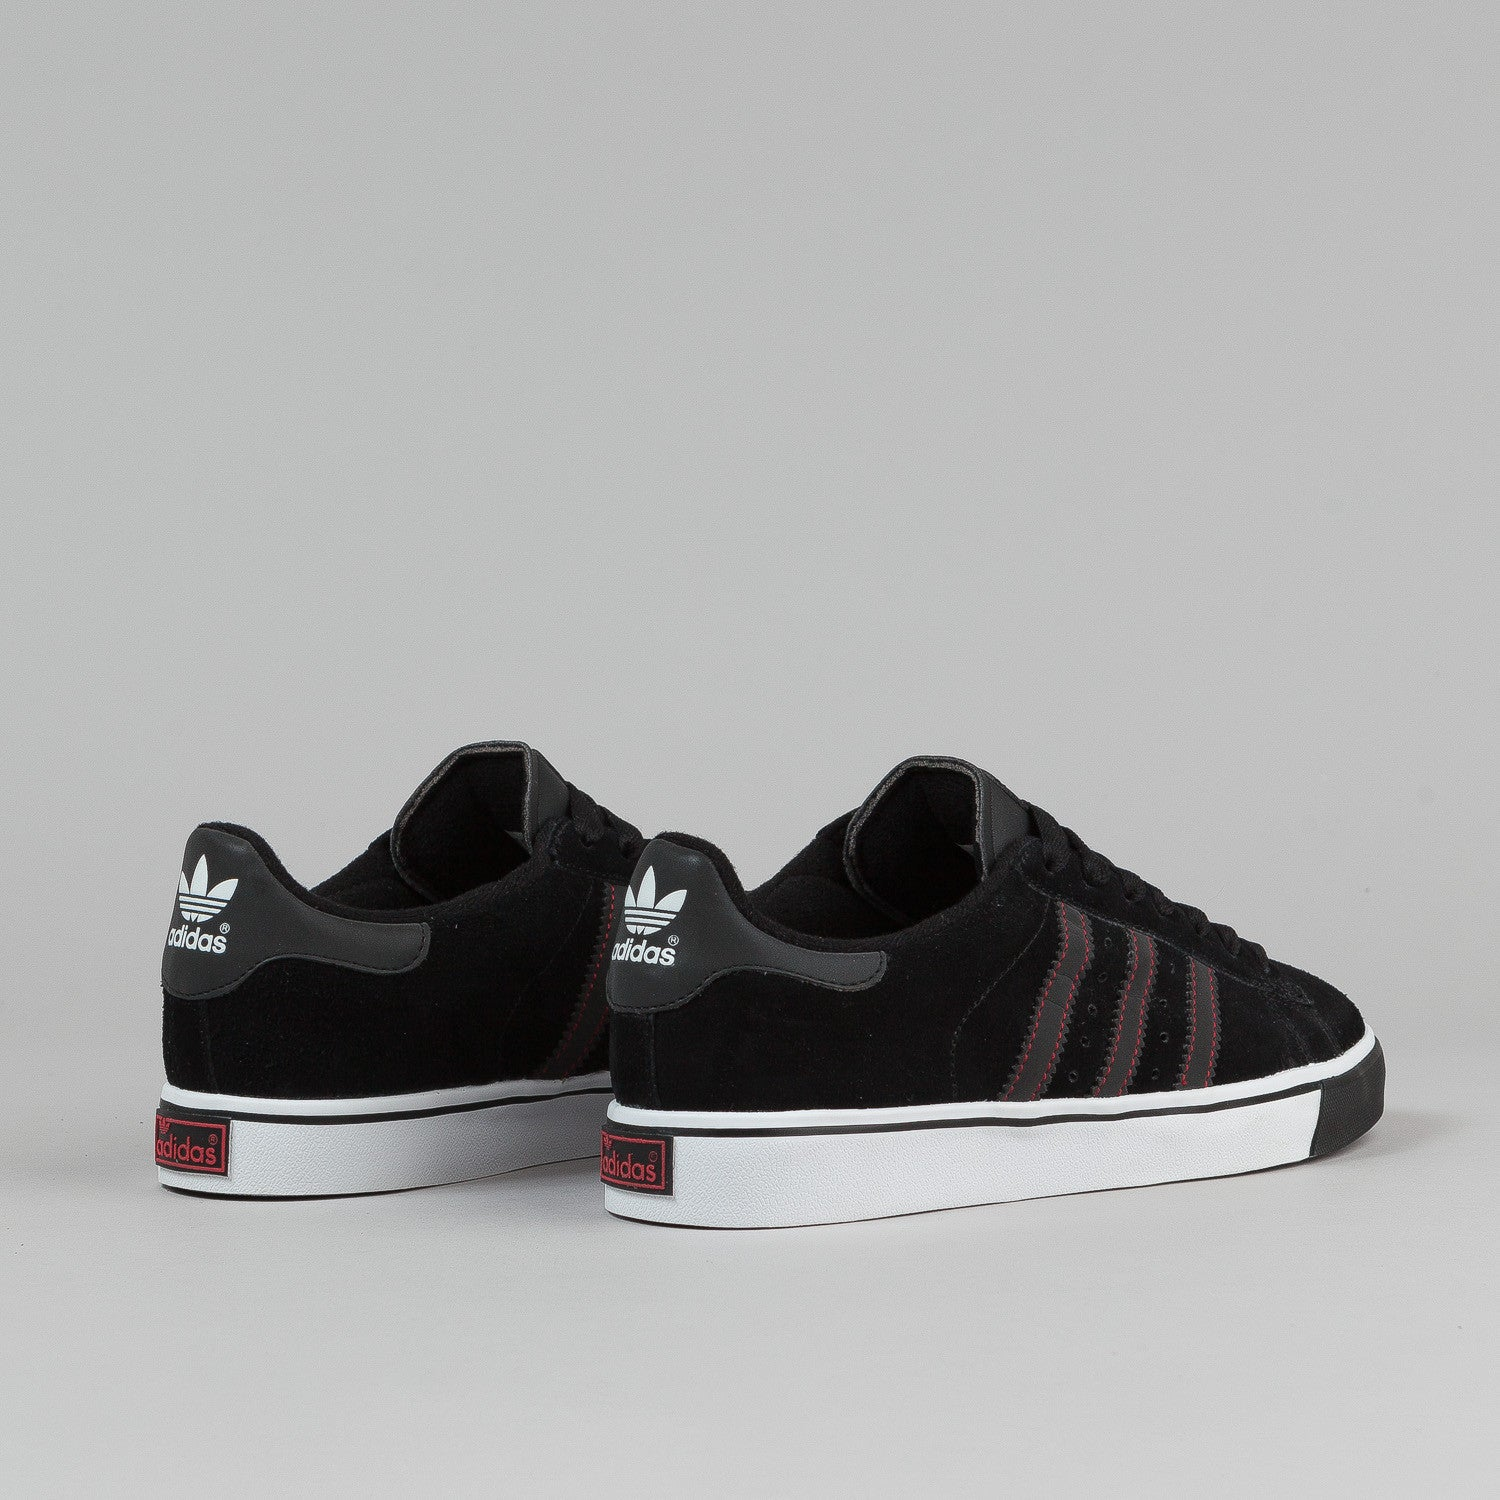 Adidas Campus Vulc Shoes - Black / Running White